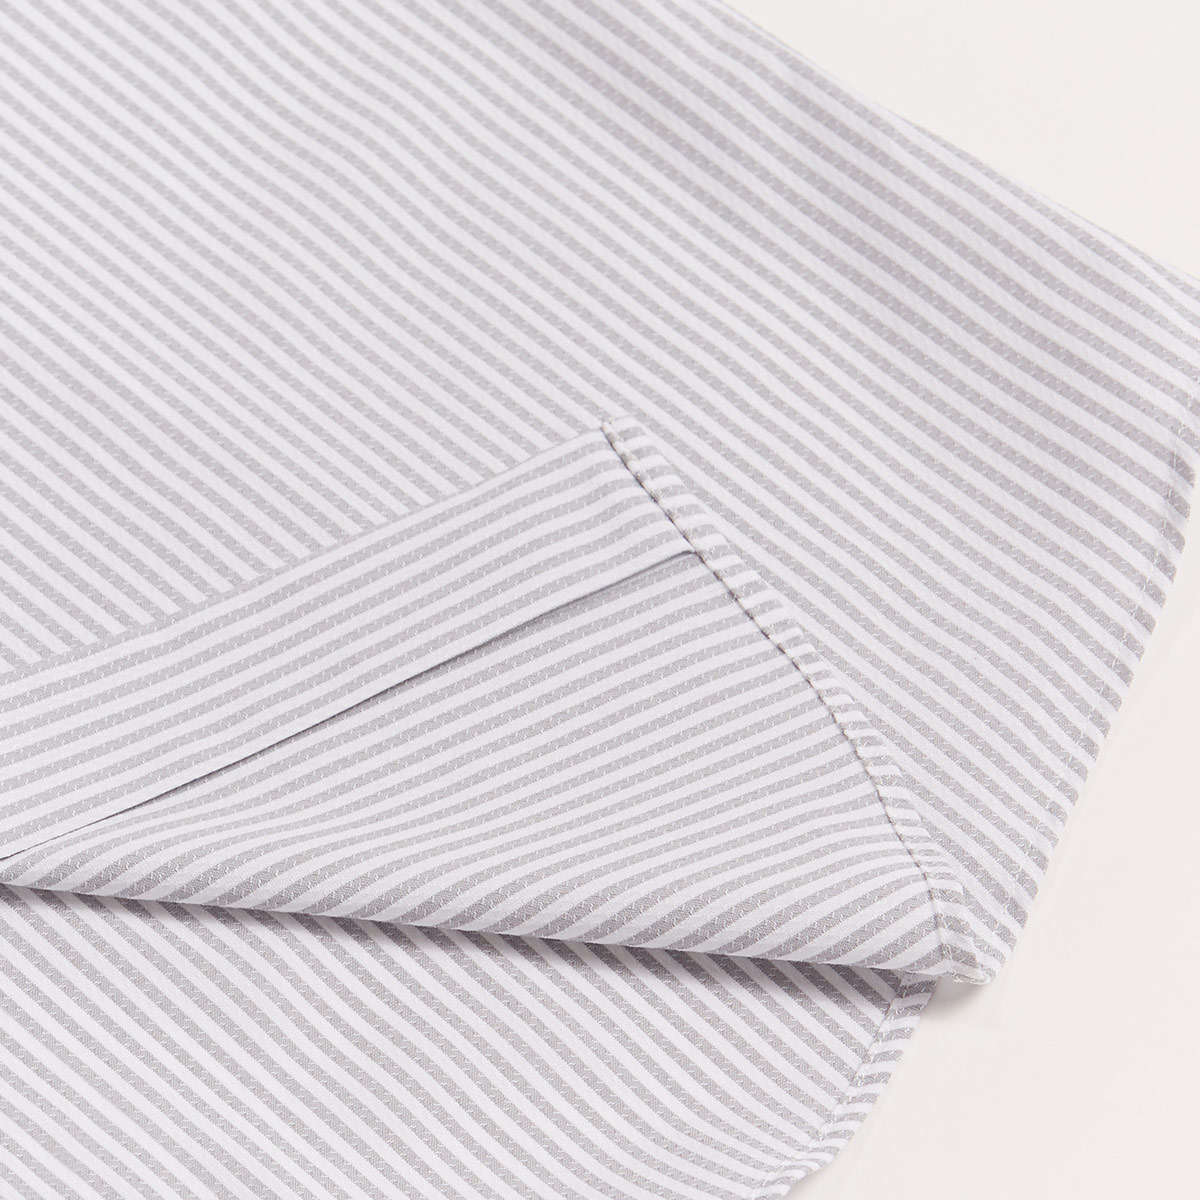 Grey and white striped shirt folded neatly with hem revealed to show off the quality of the fabric and stitching details.